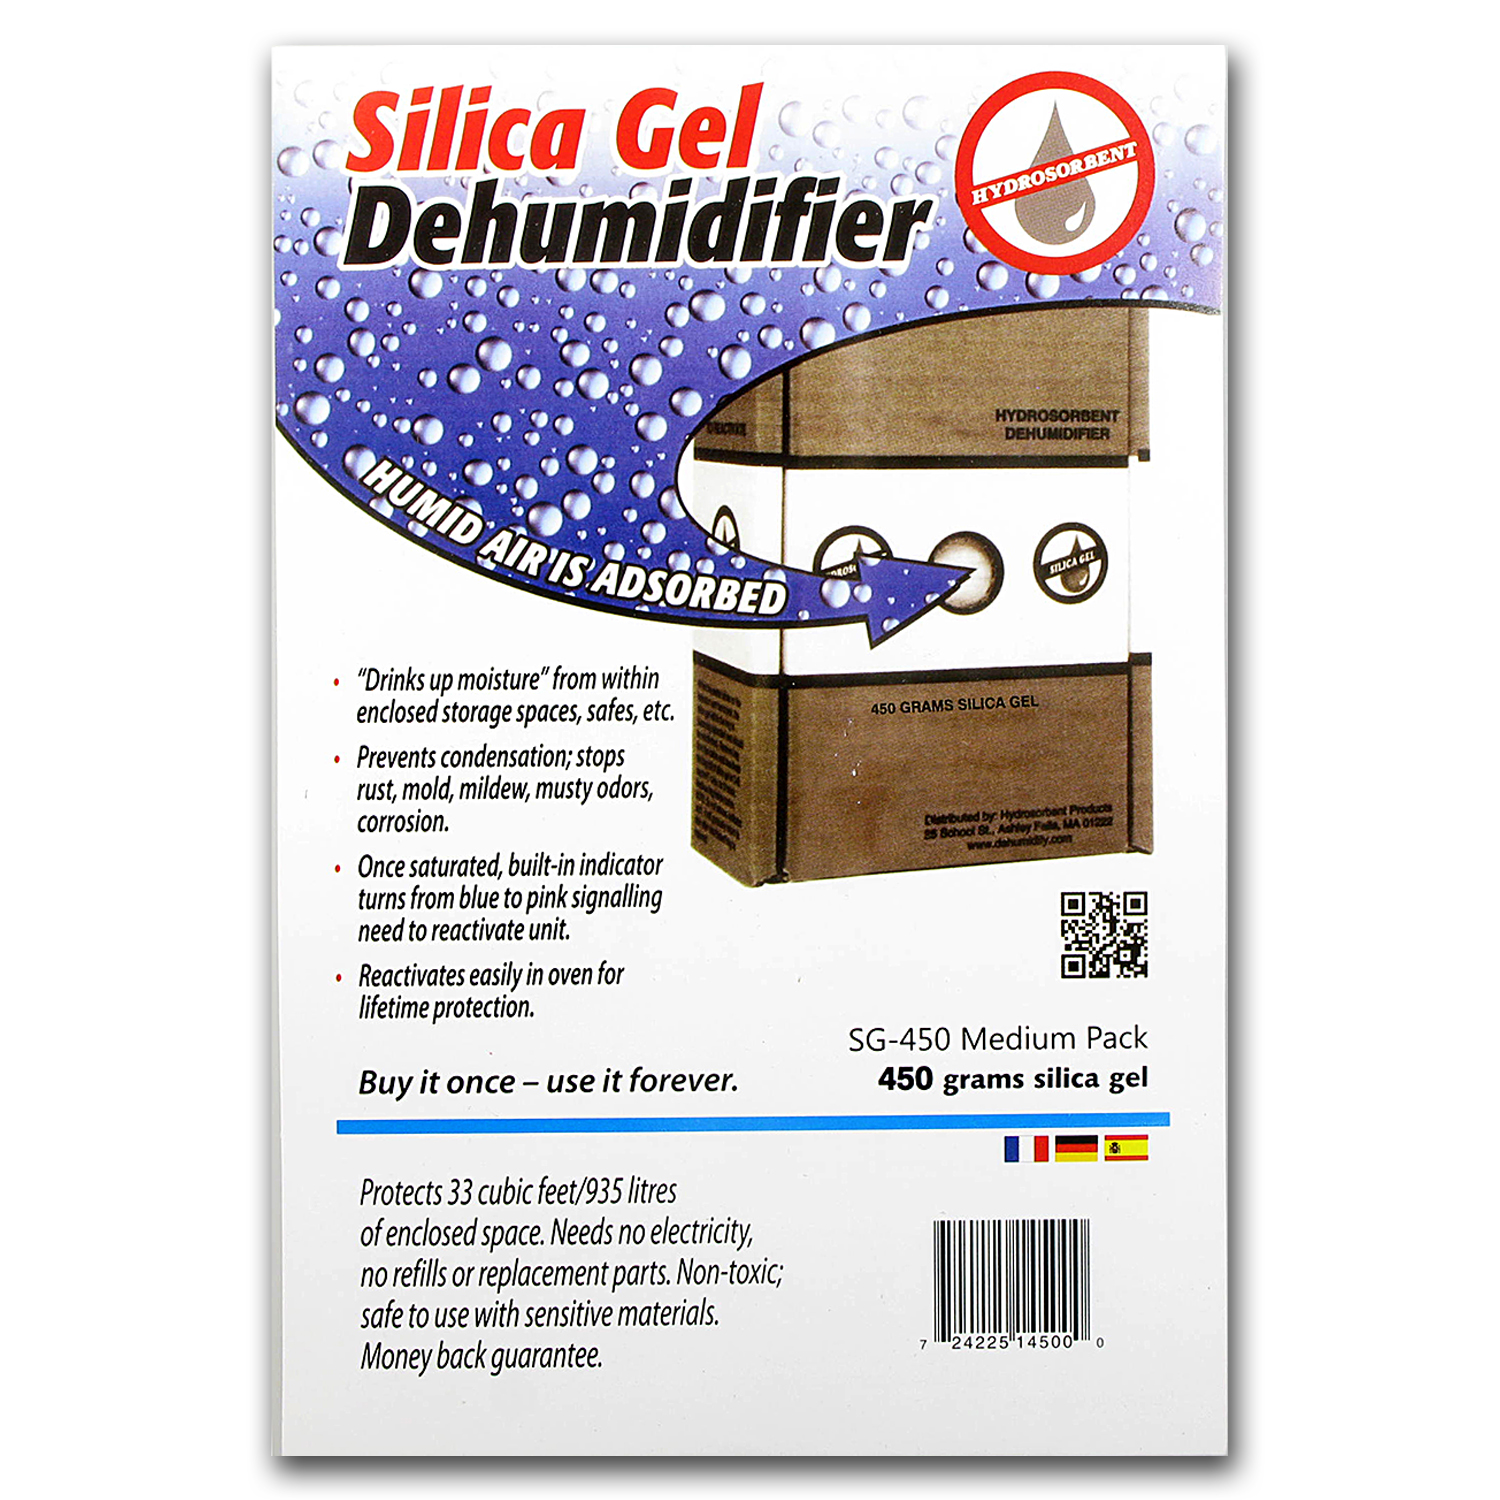 Silica Gel - Dehumidifier Crystals (450 Gram Box)